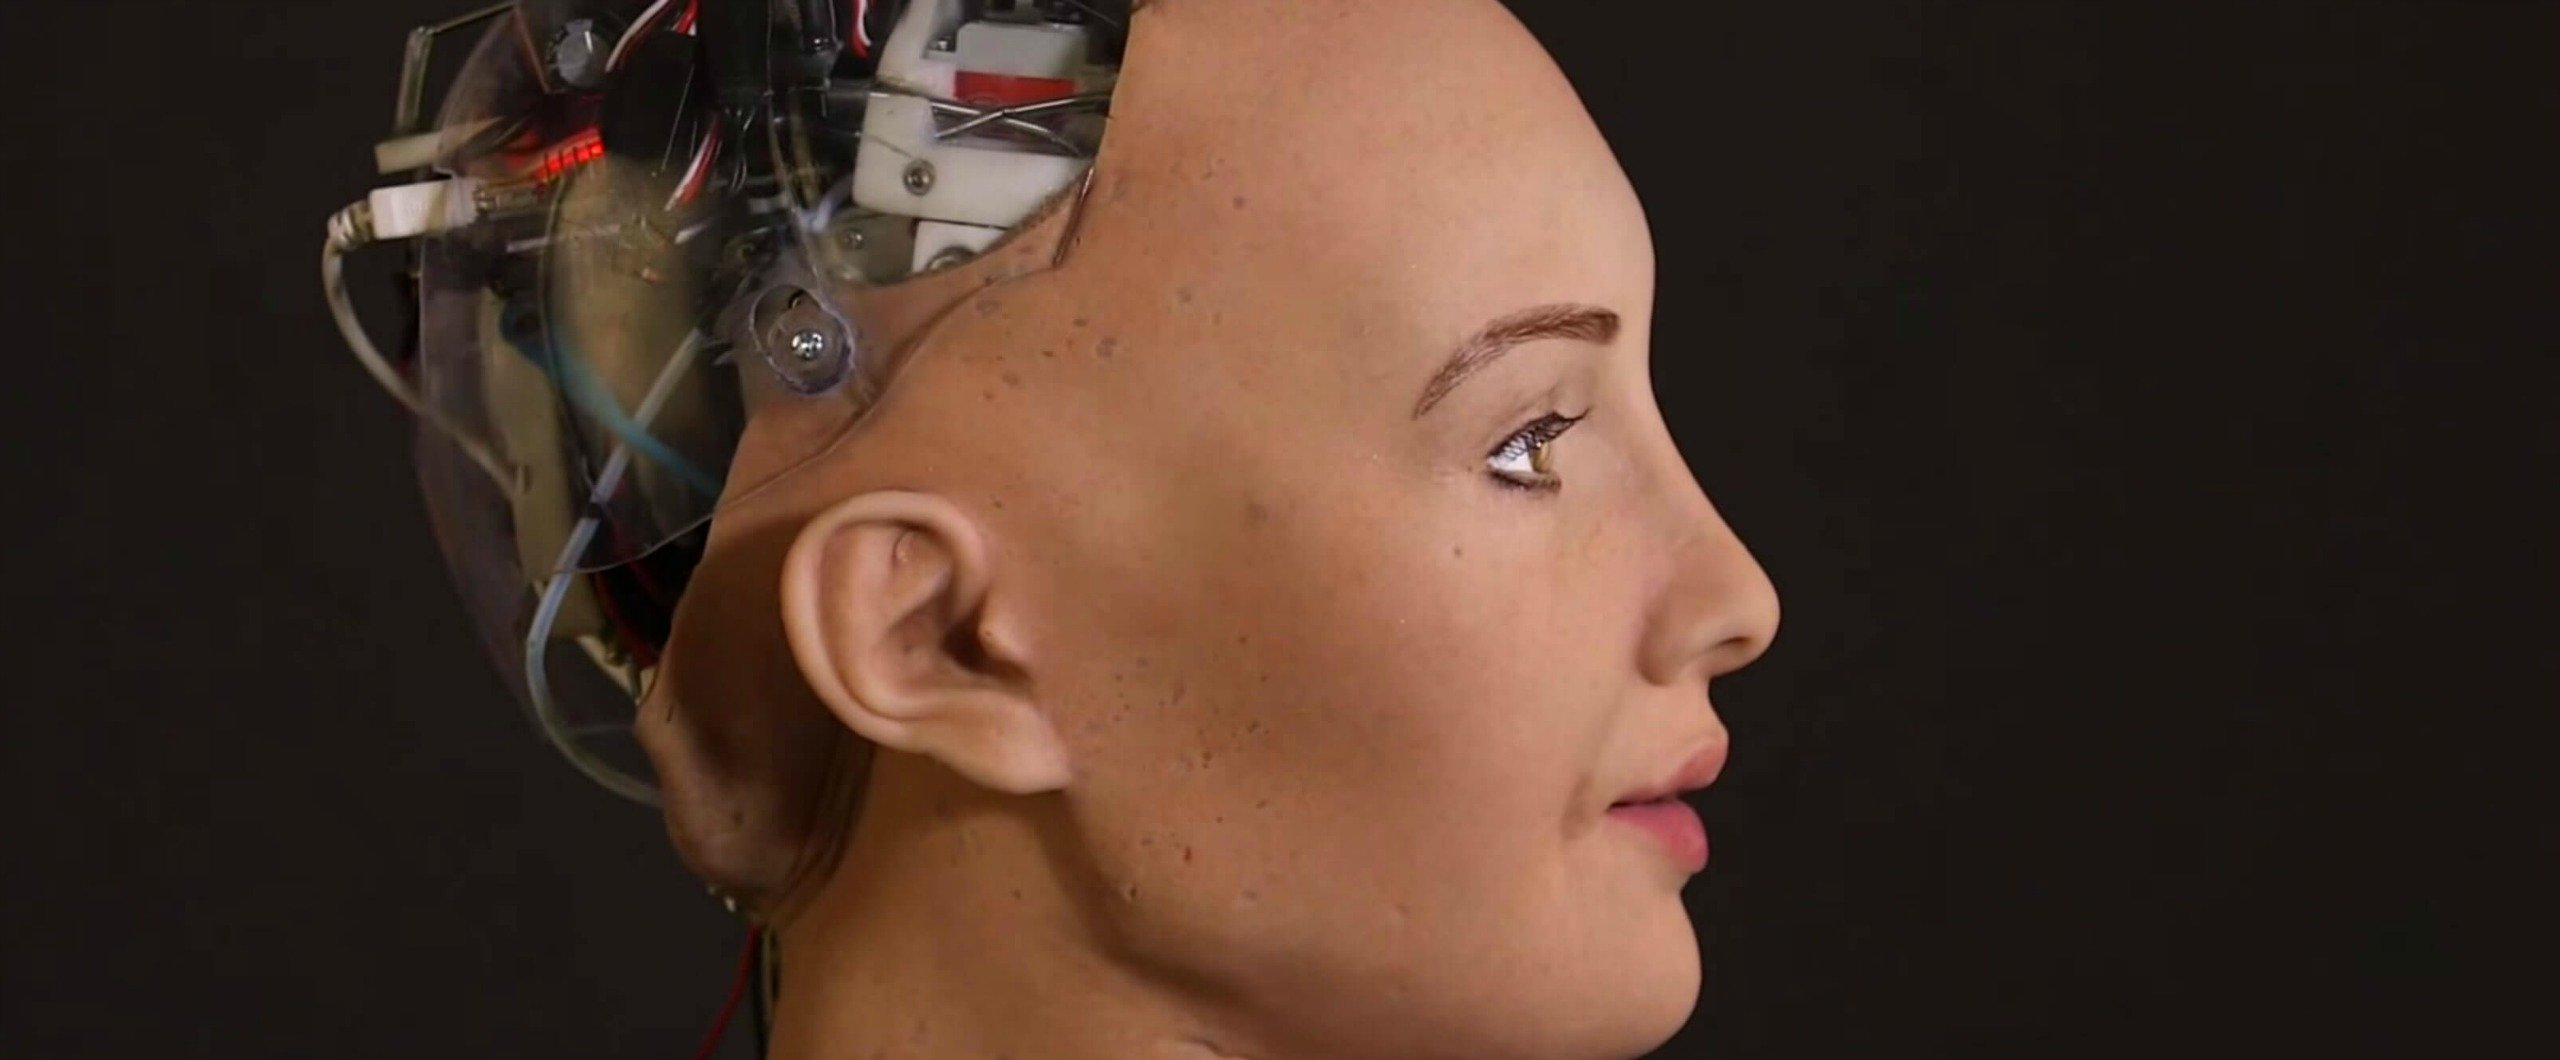 Misguided outrage at Sophia the AI highlights our hypocrisy towards robotics